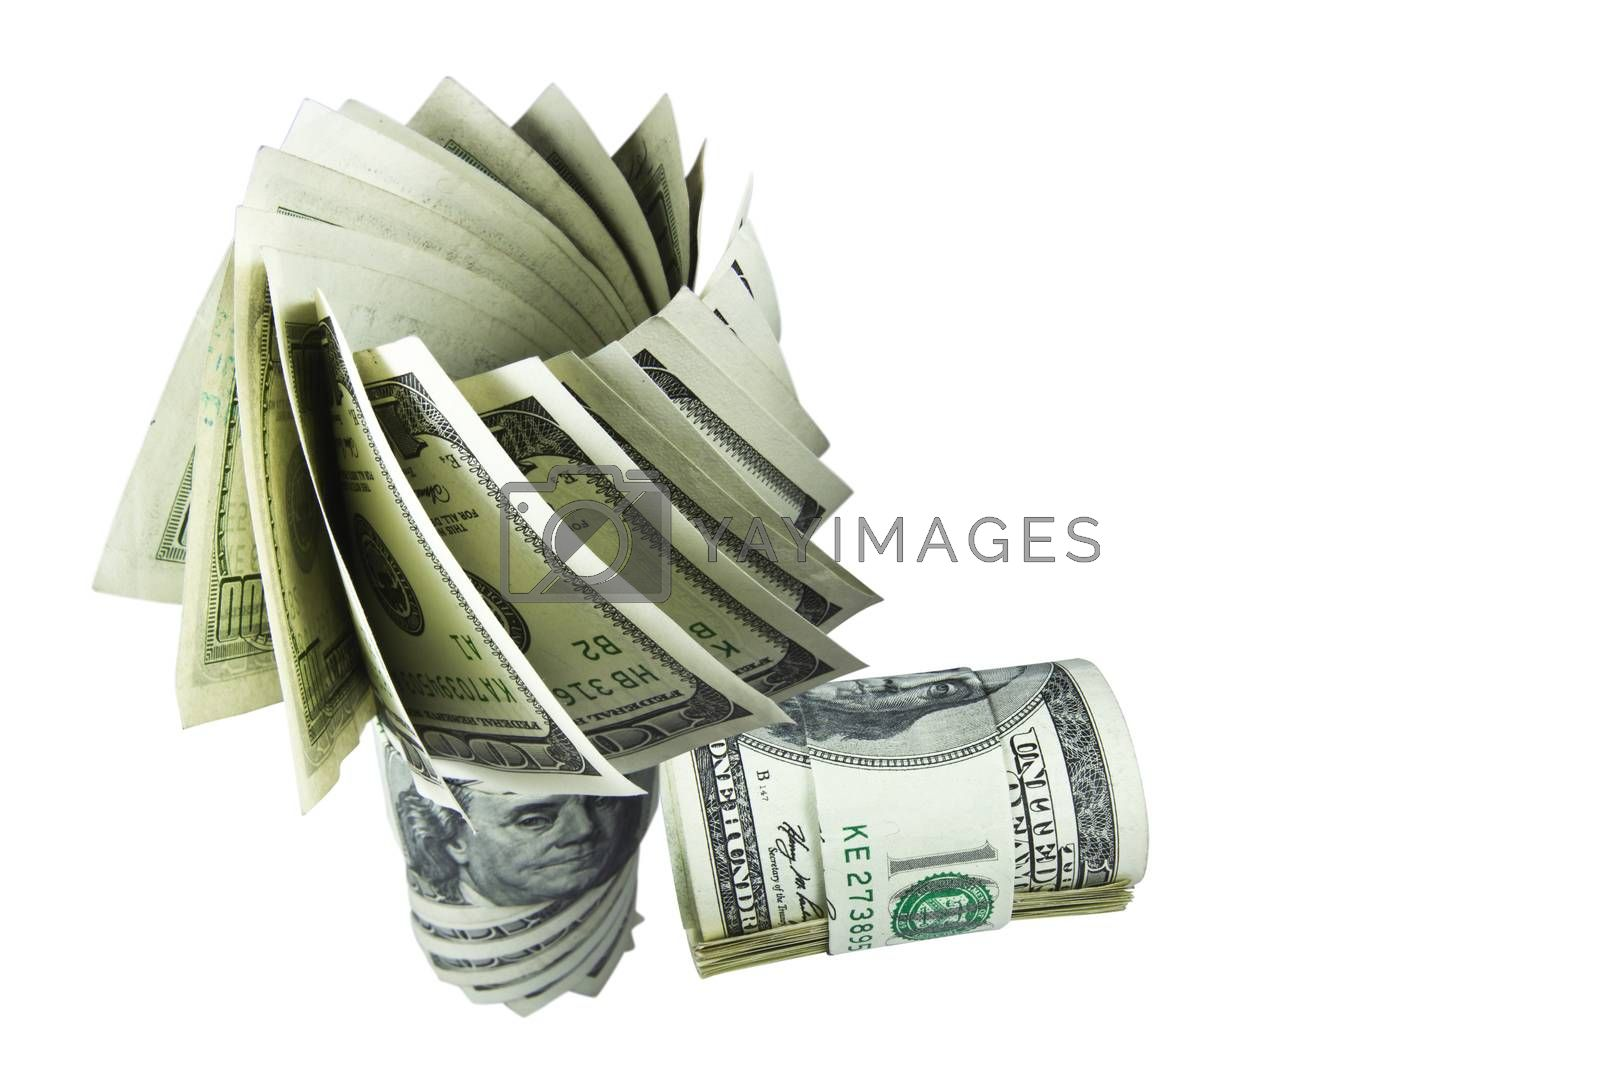 The money hundred dollar bills of American with white background